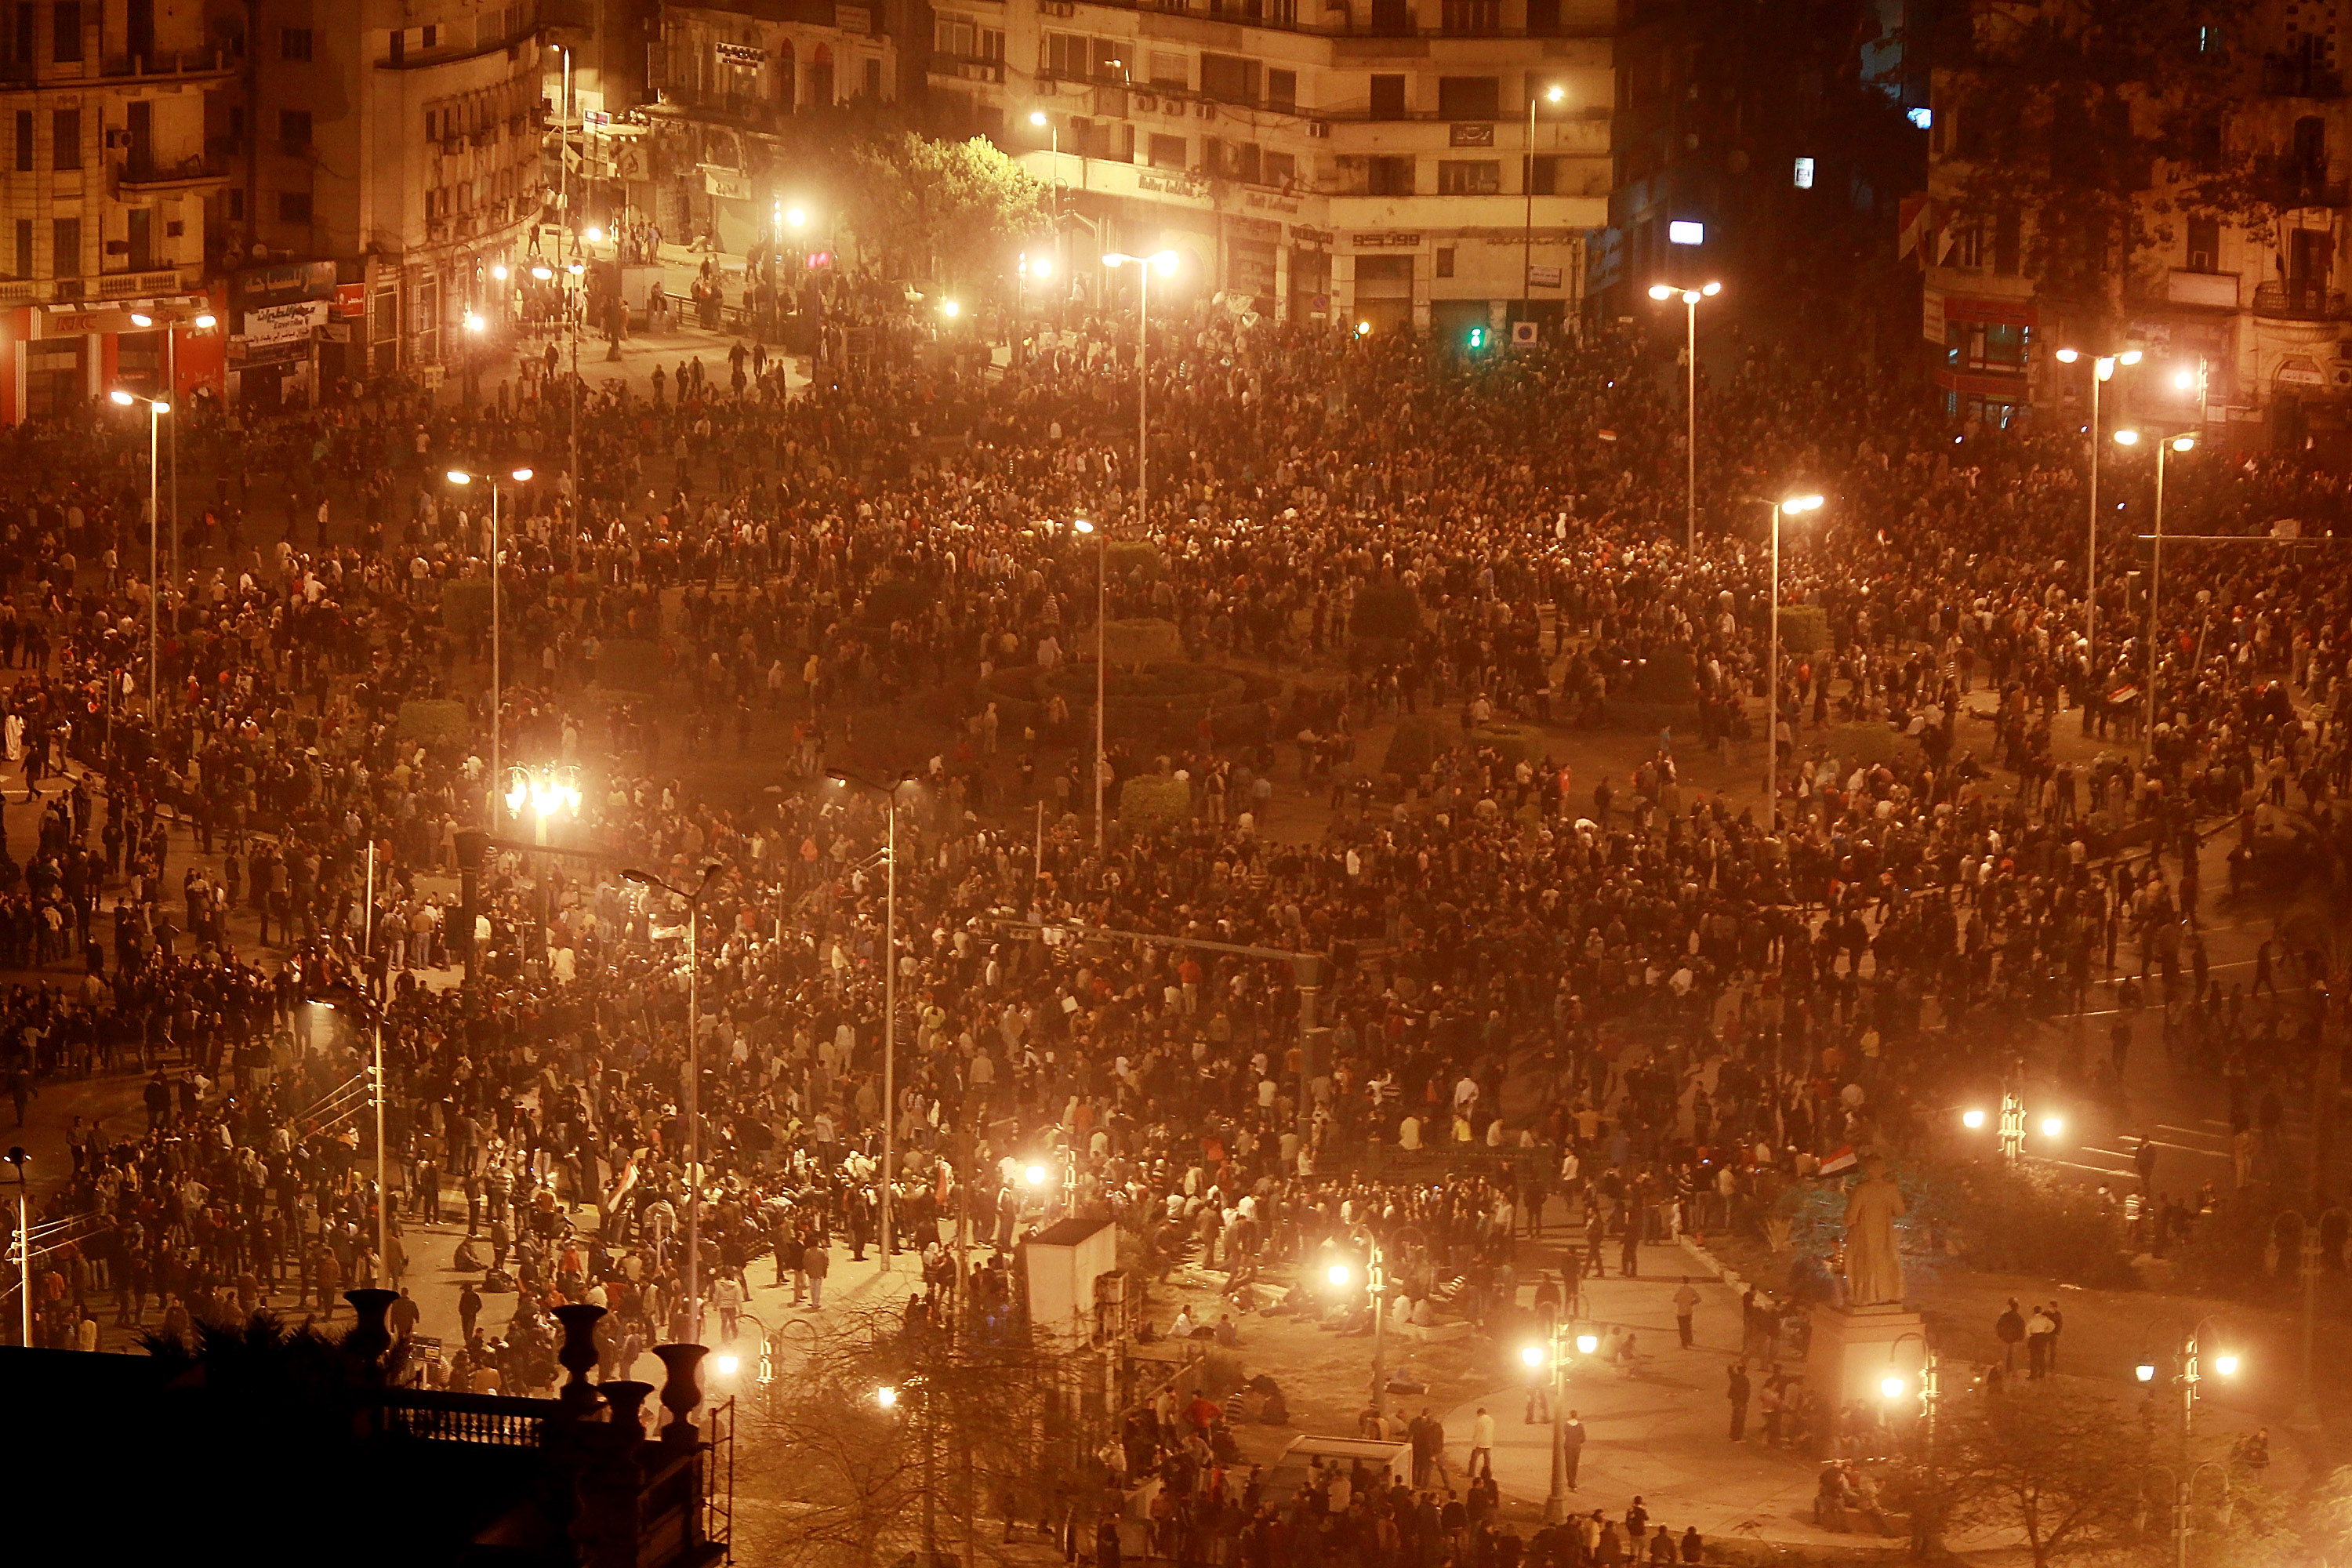 Thousands of protestors gathered in Tahrir Square on Jan. 28, 2011 in Cairo, Egypt. Thousands of police were on the streets of the capital and hundreds of arrests were made in an attempt to quell demonstrations.